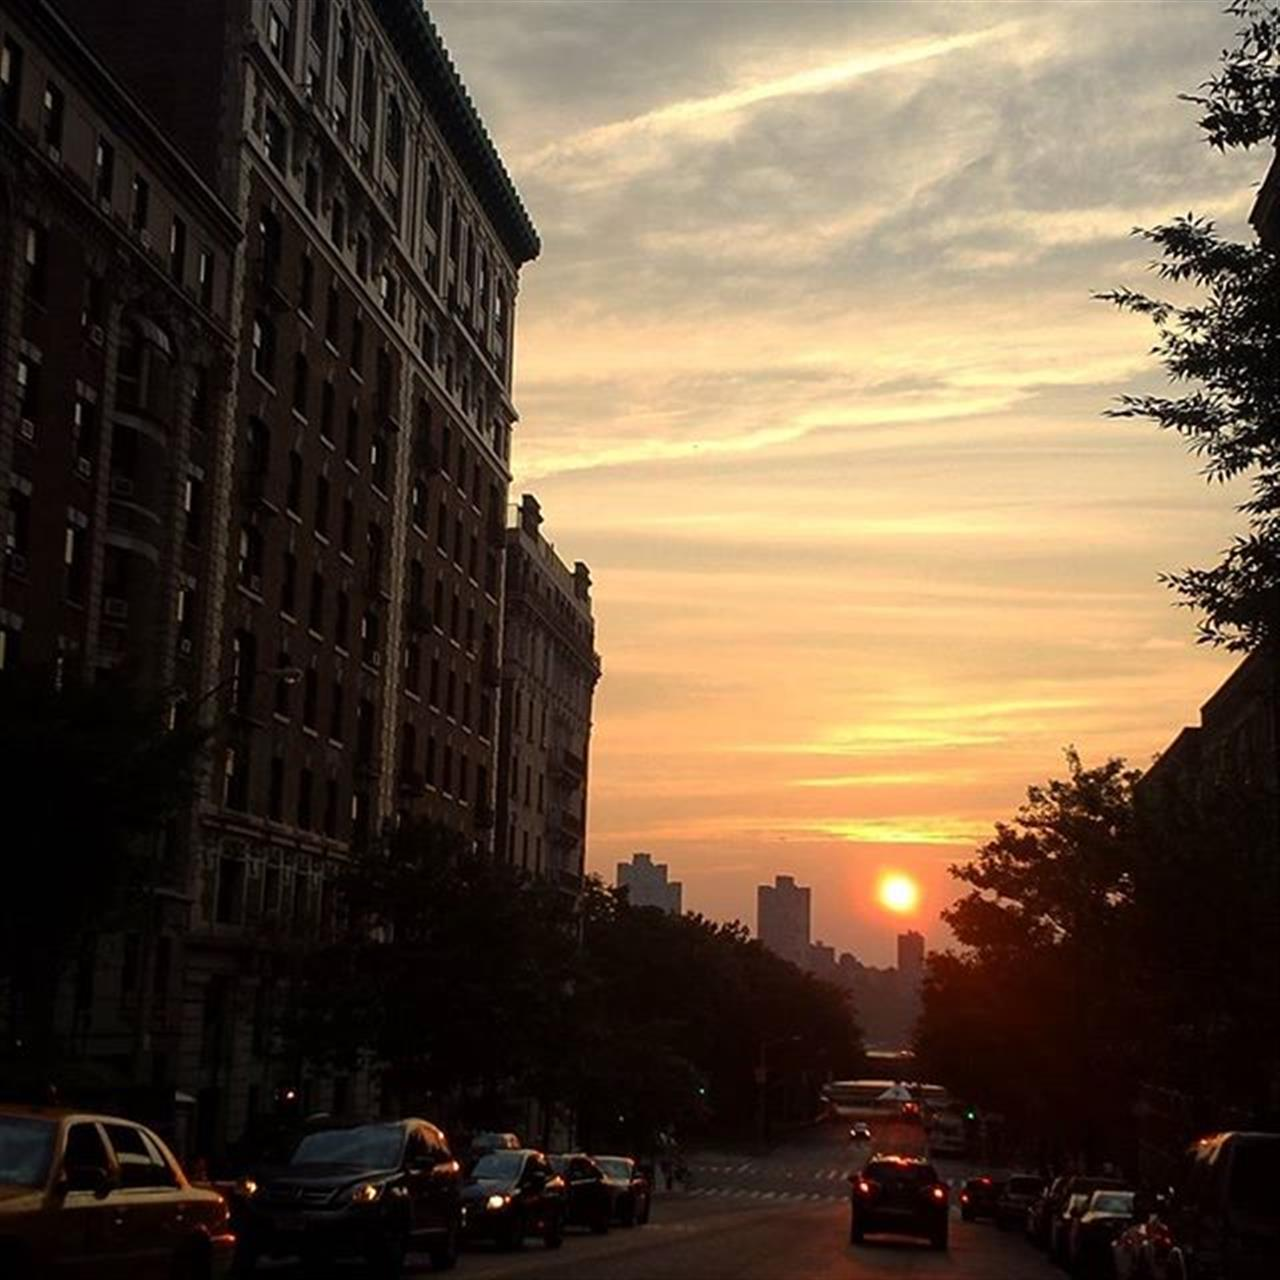 A classic western ending...#westend #sunset #hudsonriver #exploreyourhood #leadingrelocal #upperwestside